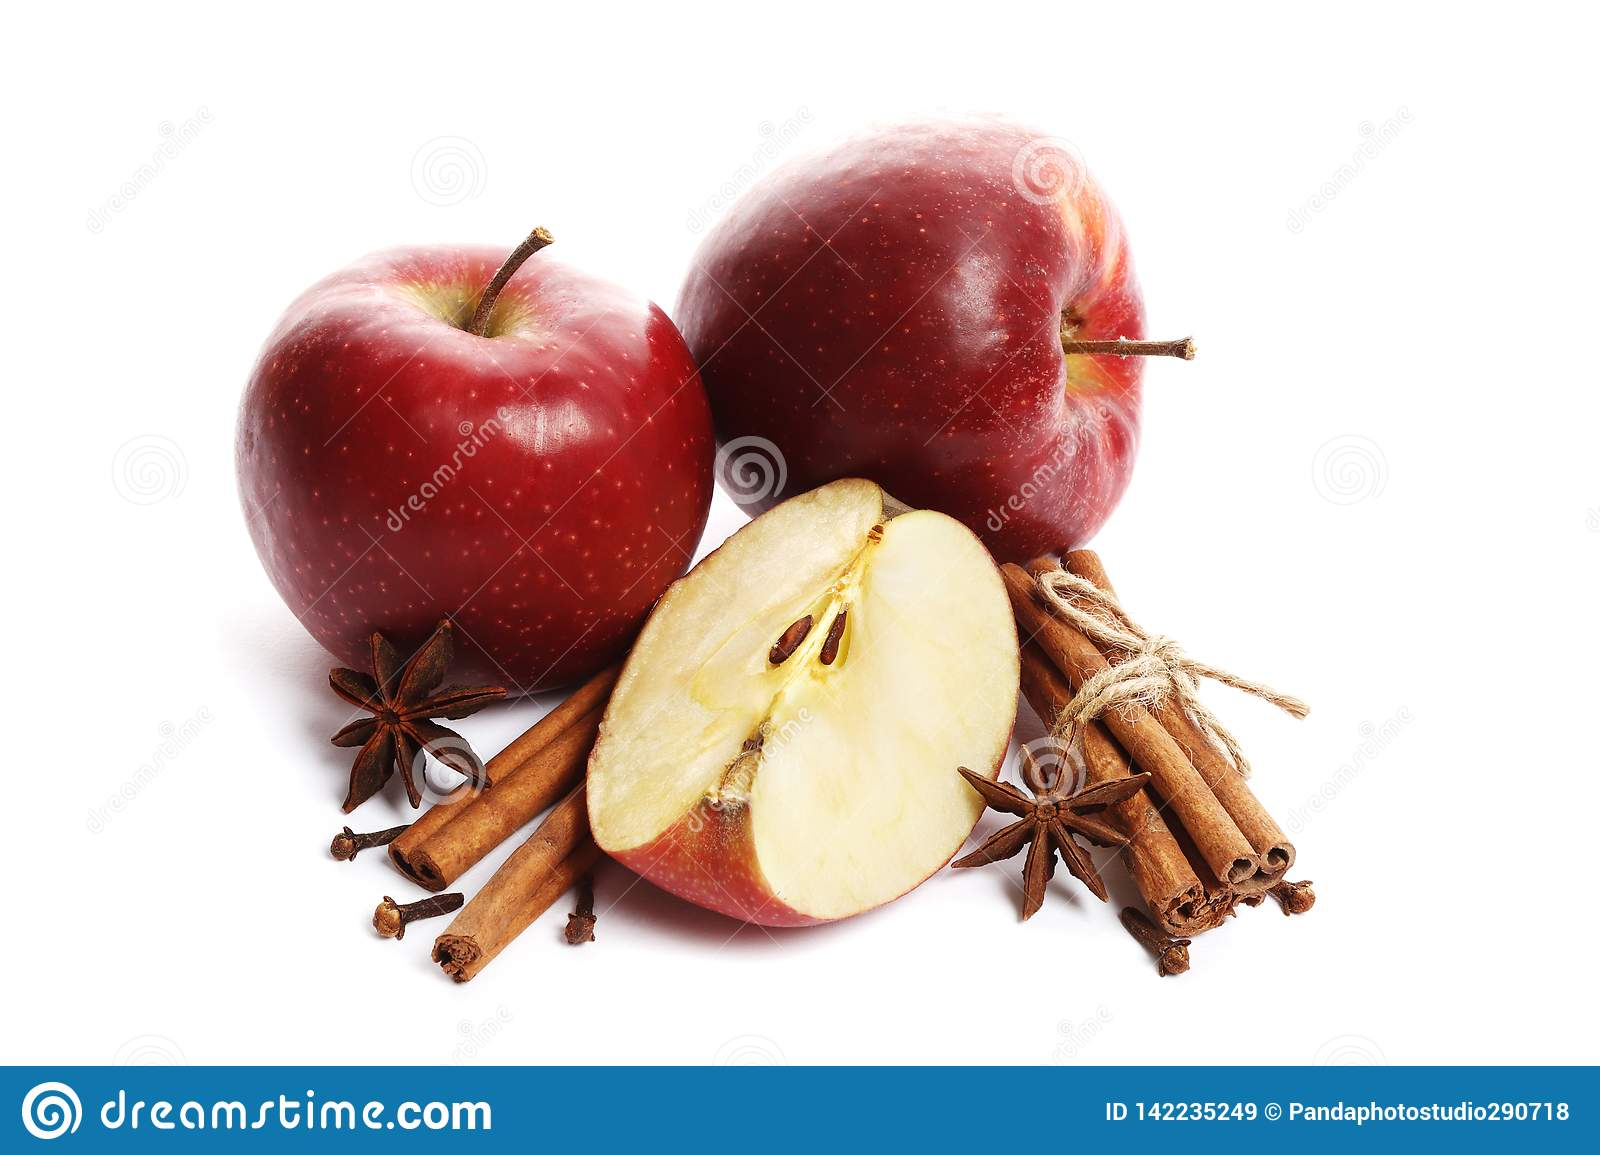 Juicy ripe apples with cinnamon and star anise isolated on white background